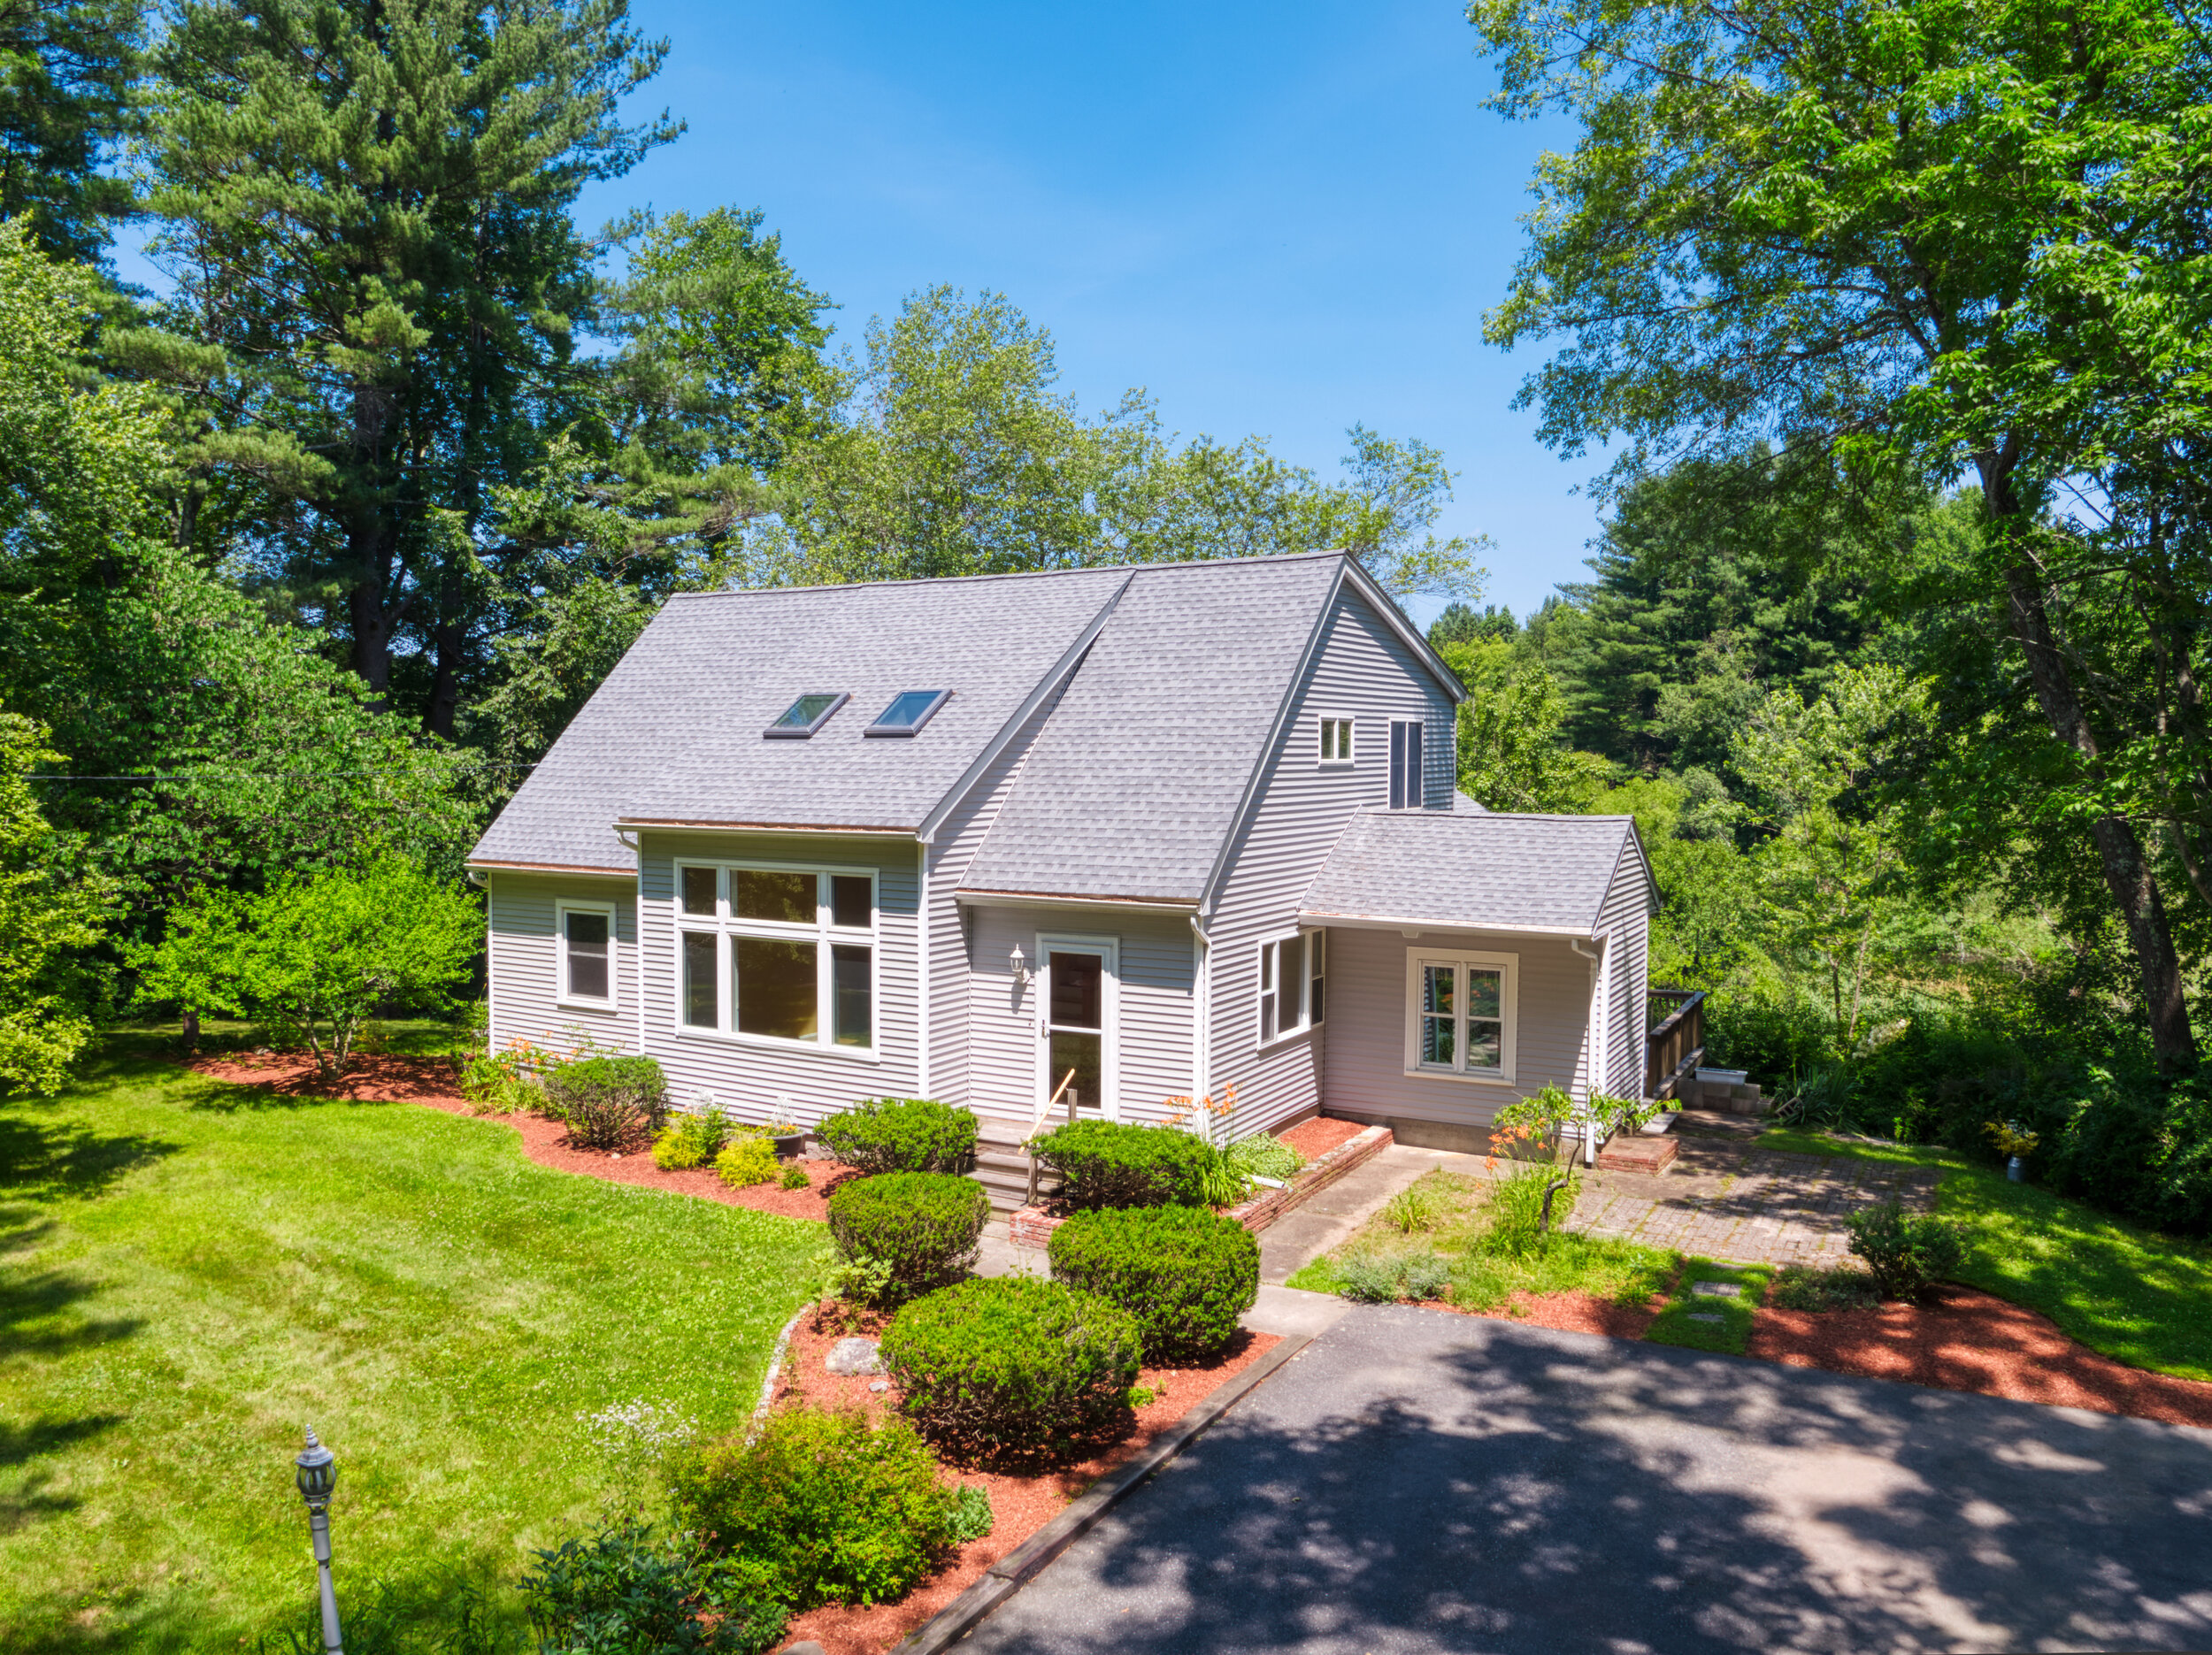 155 School Street - Click to View